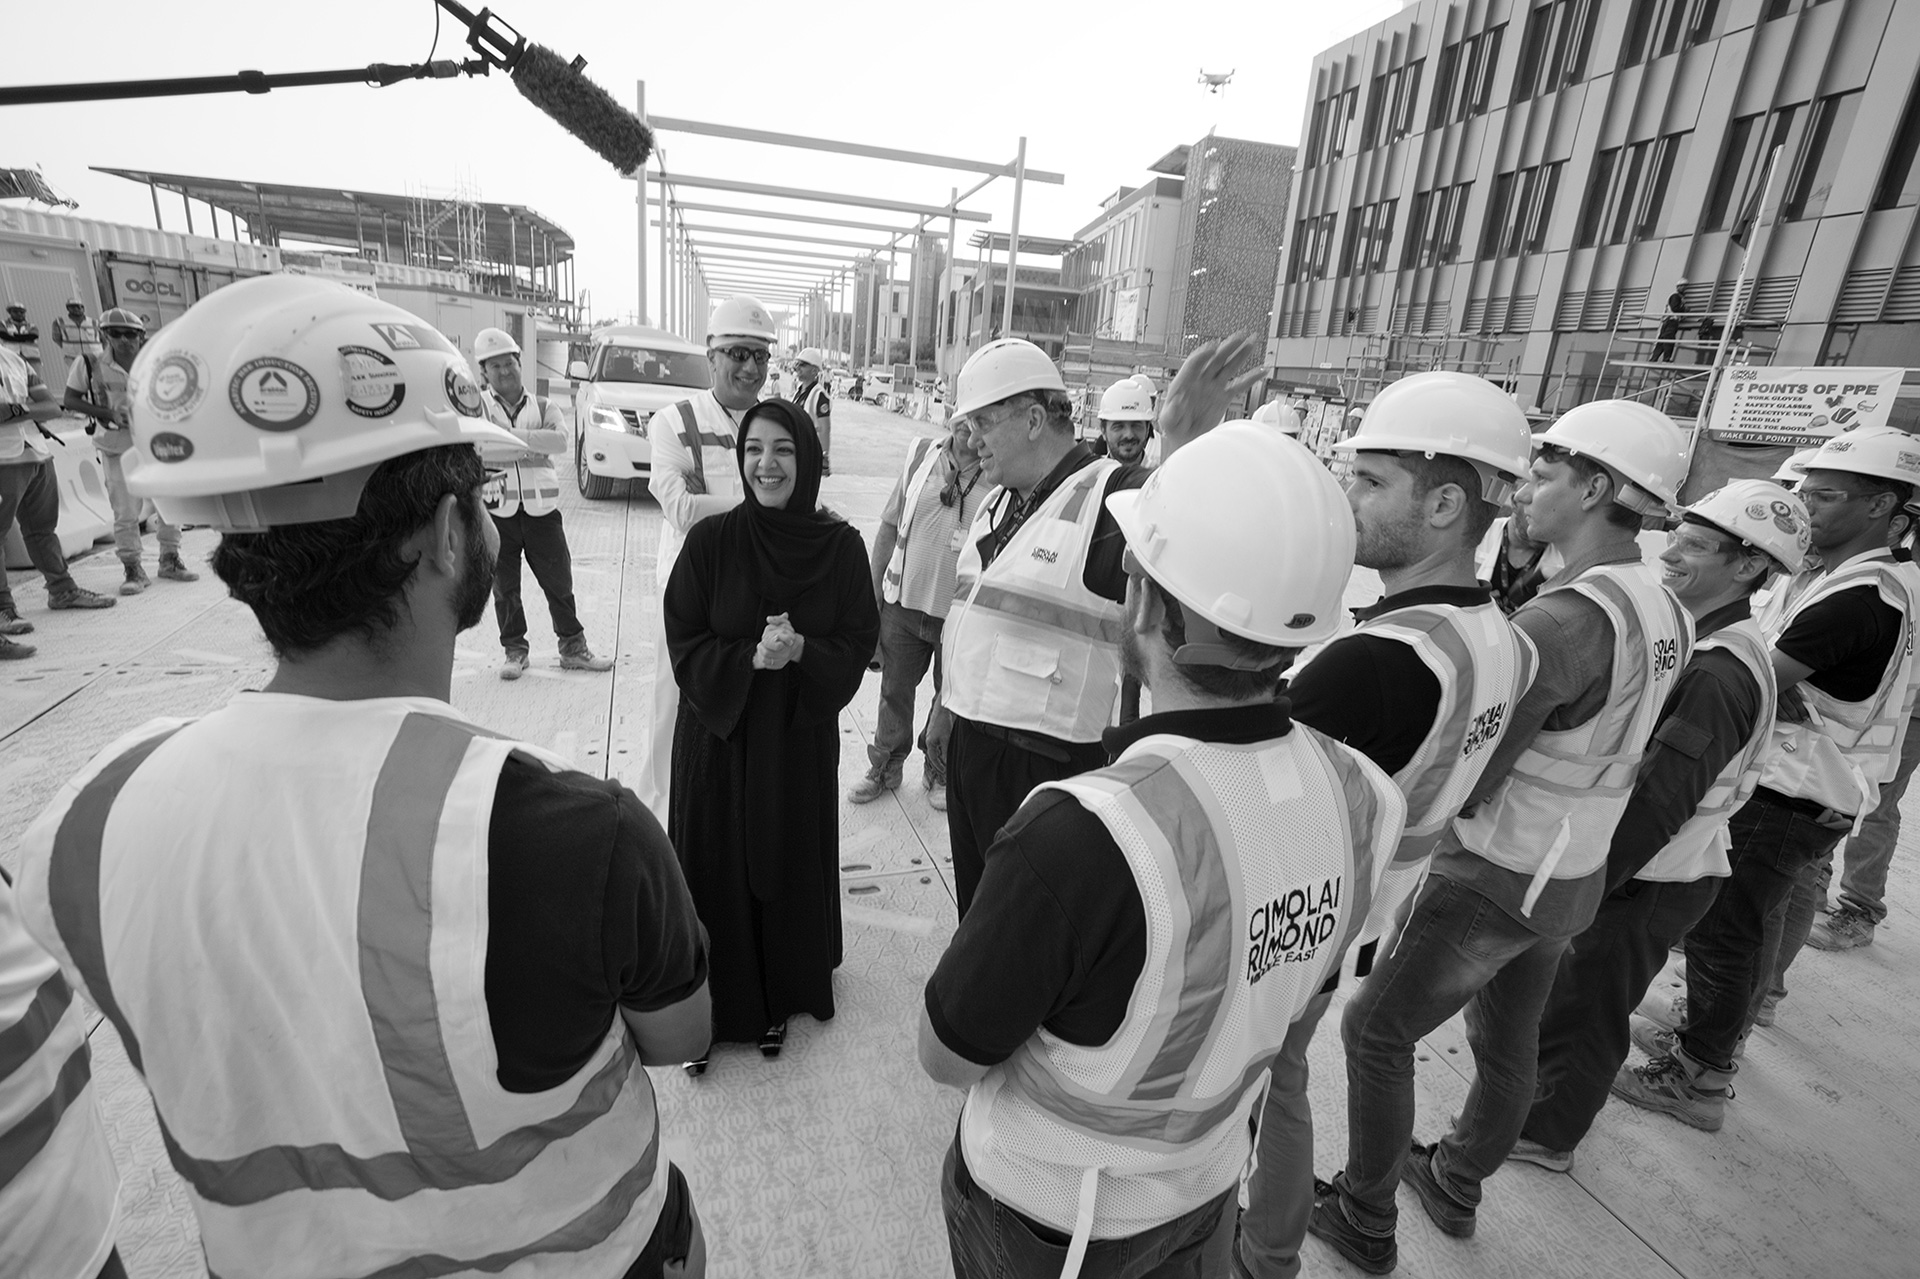 Her Excellency Reem Al Hashimy, Director General of Expo 2020 Dubai, with the team | Al Wasl Dome|Expo 2020| Dubai| STIRworld